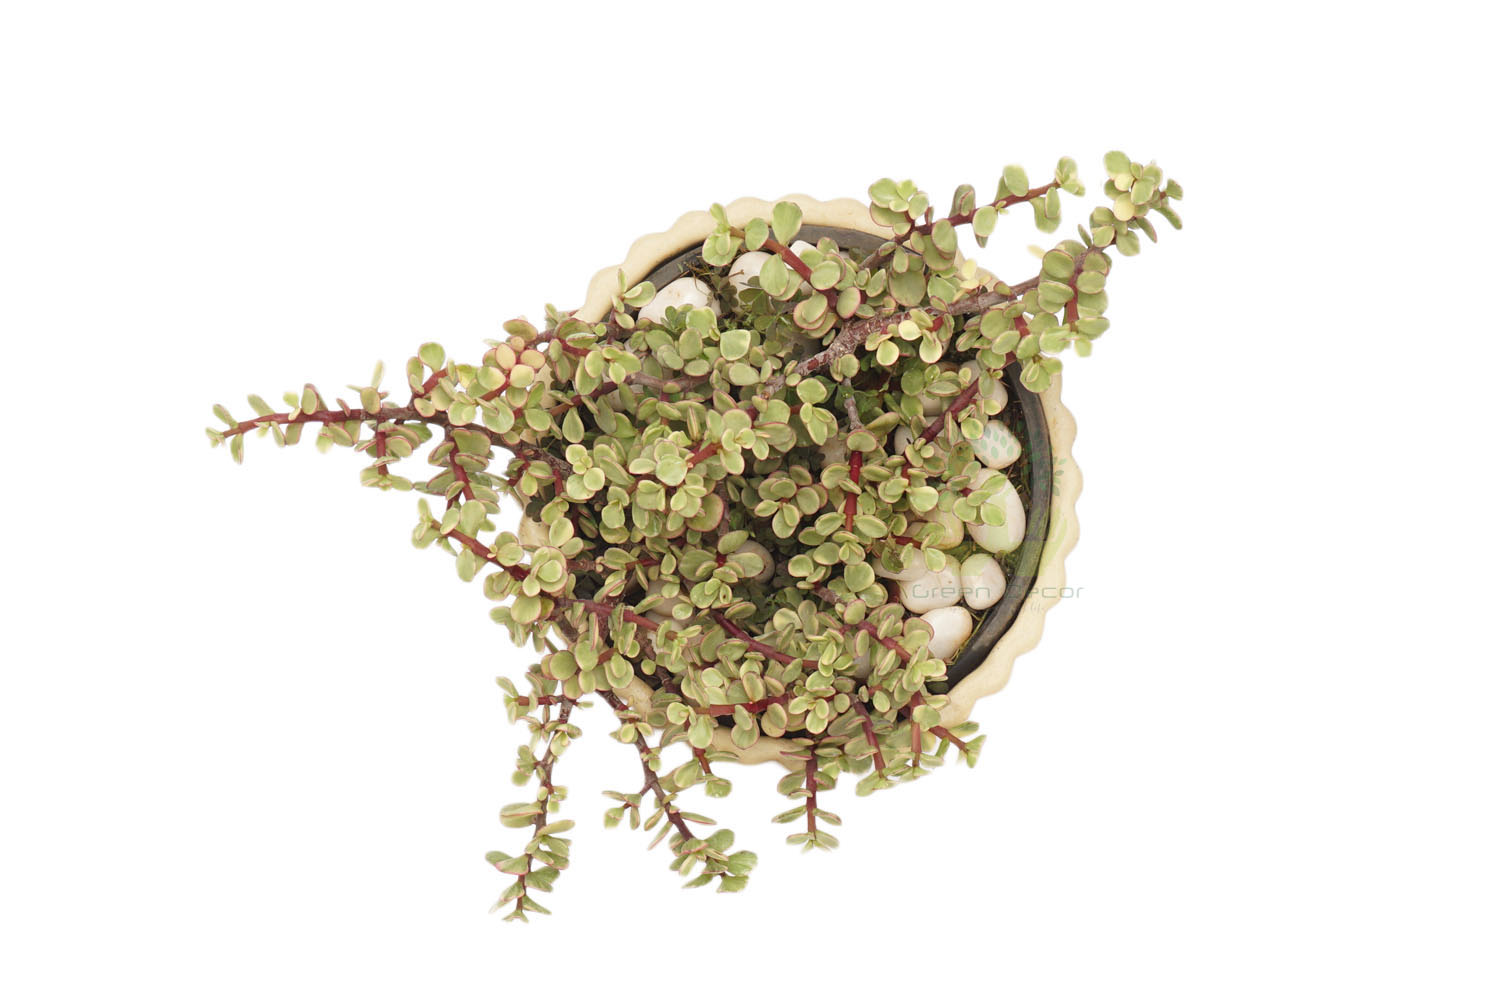 Buy Jade Variegated-Red Plants , White Pots and seeds in Delhi NCR by the best online nursery shop Greendecor.